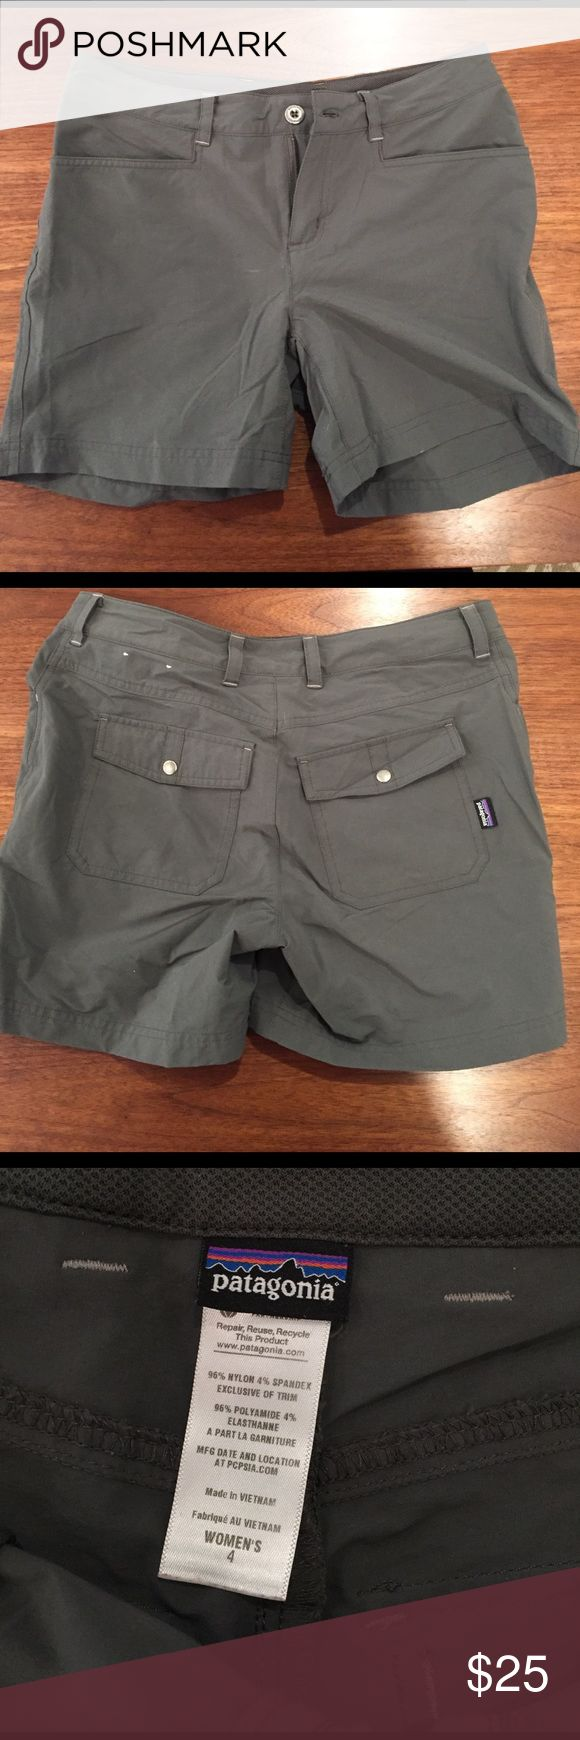 Patagonia Hiking Shorts Great conditions, only worn a handful of times Patagonia Shorts